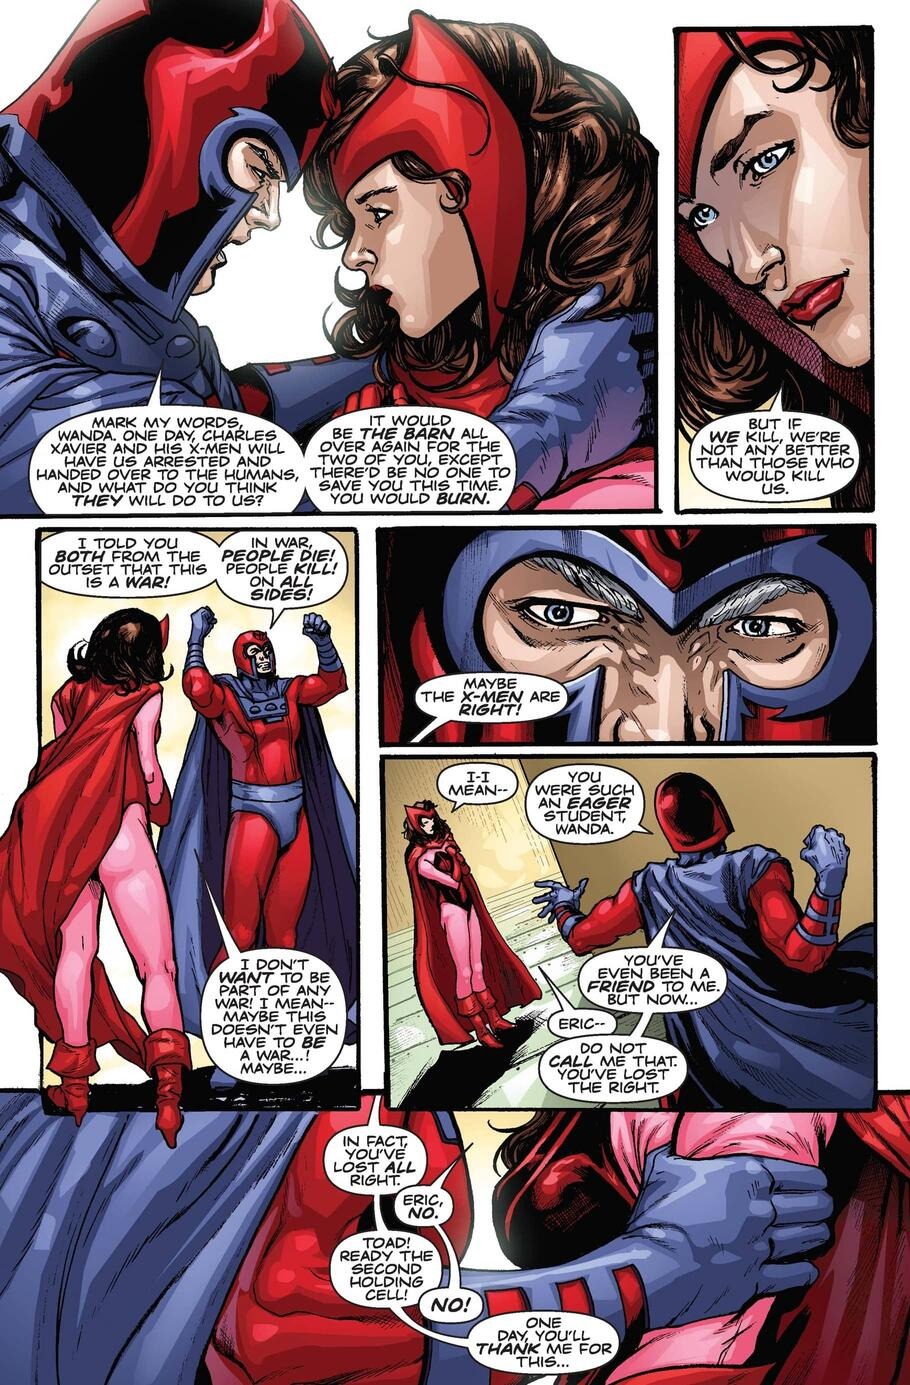 Wanda attempts to leave the Brotherhood but faces imprisonment from Magneto.